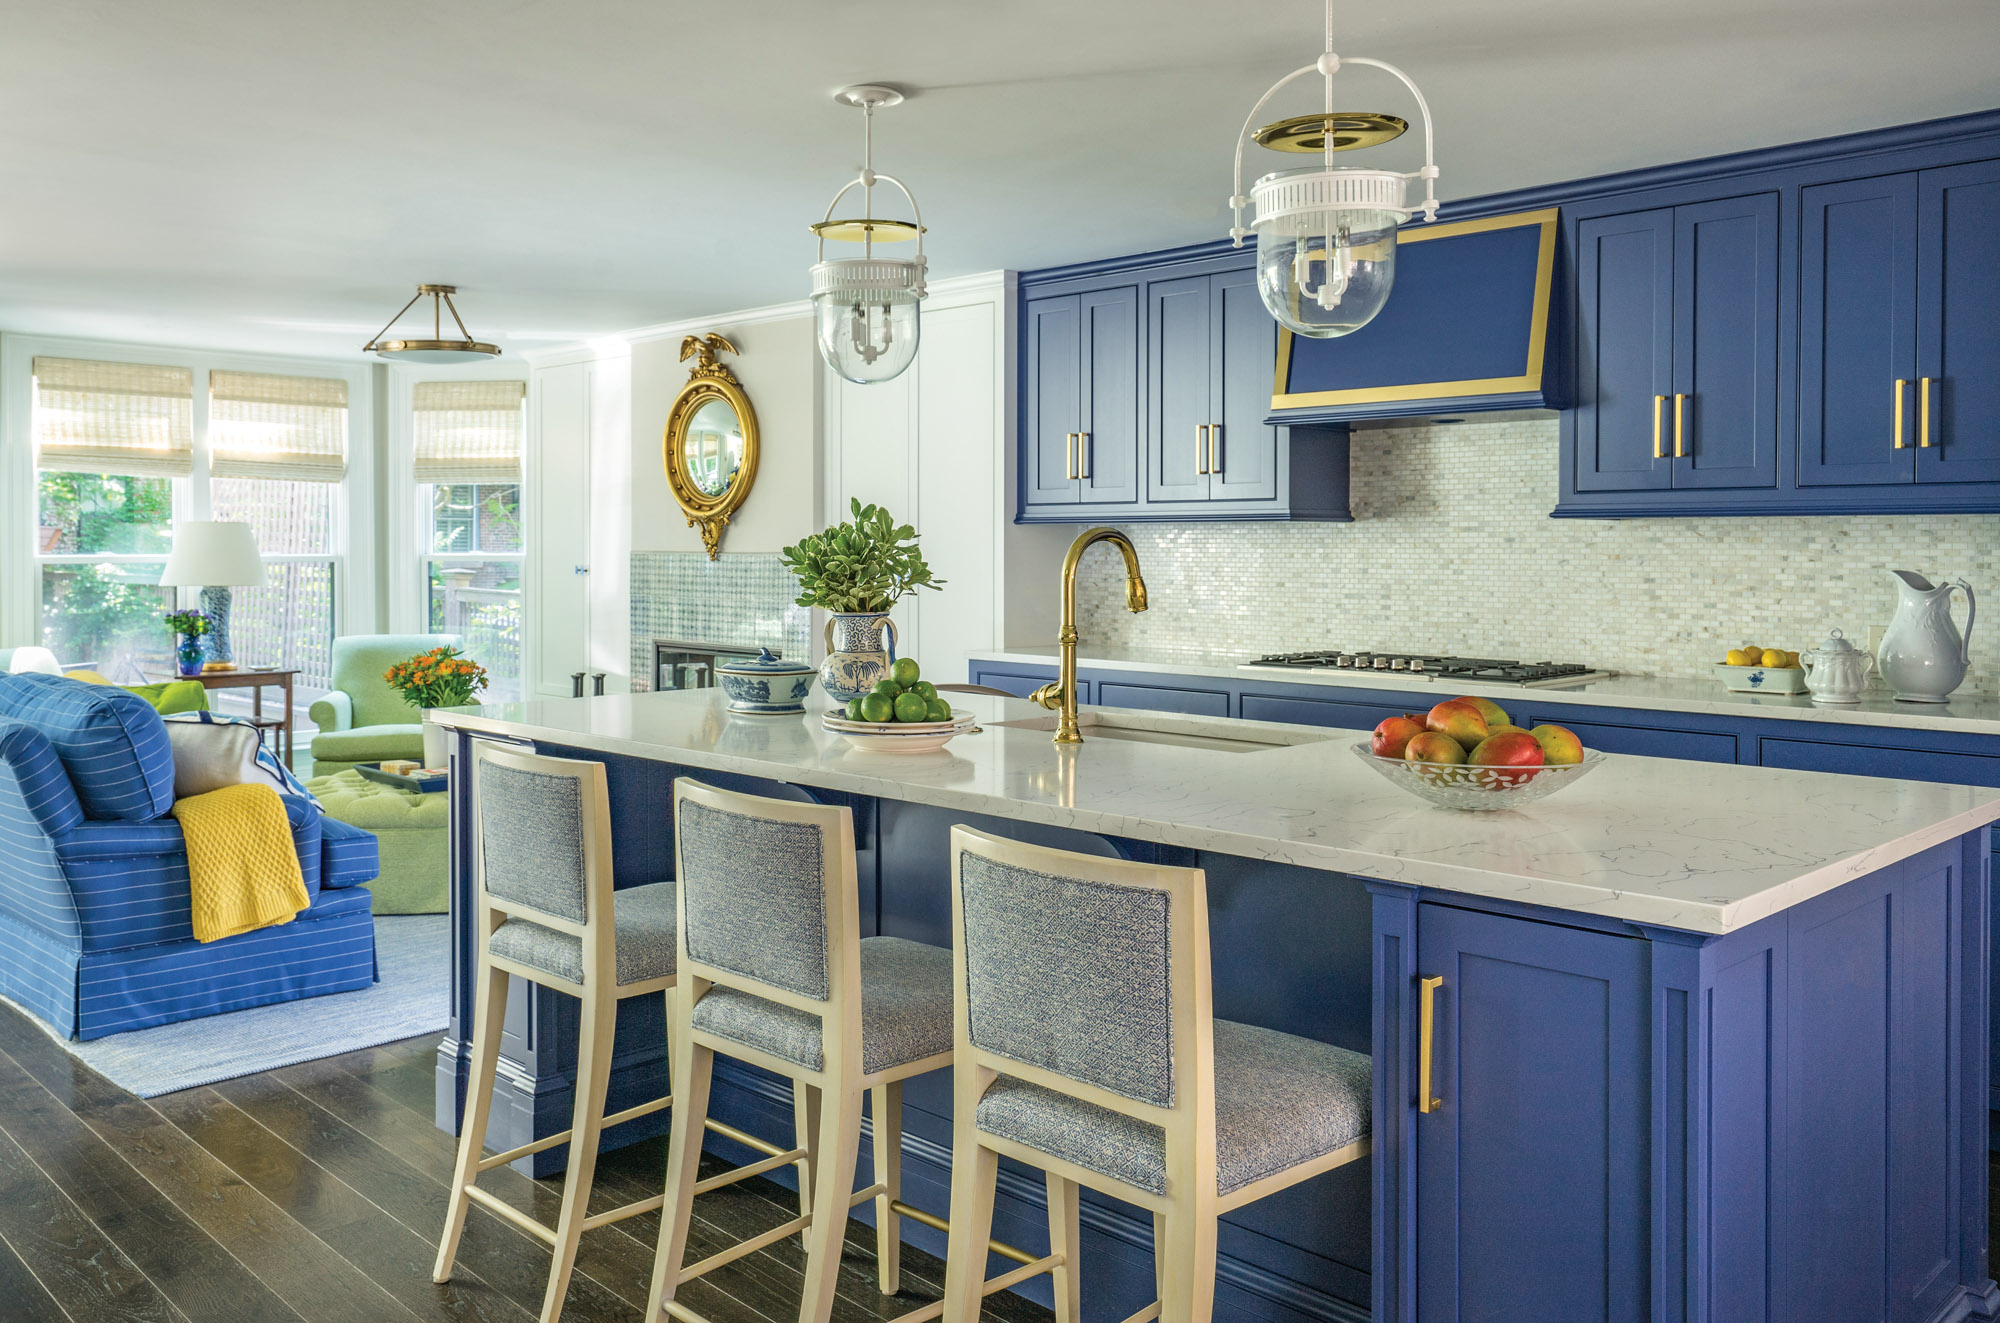 custom cerulean-blue cabinetry in the kitchen